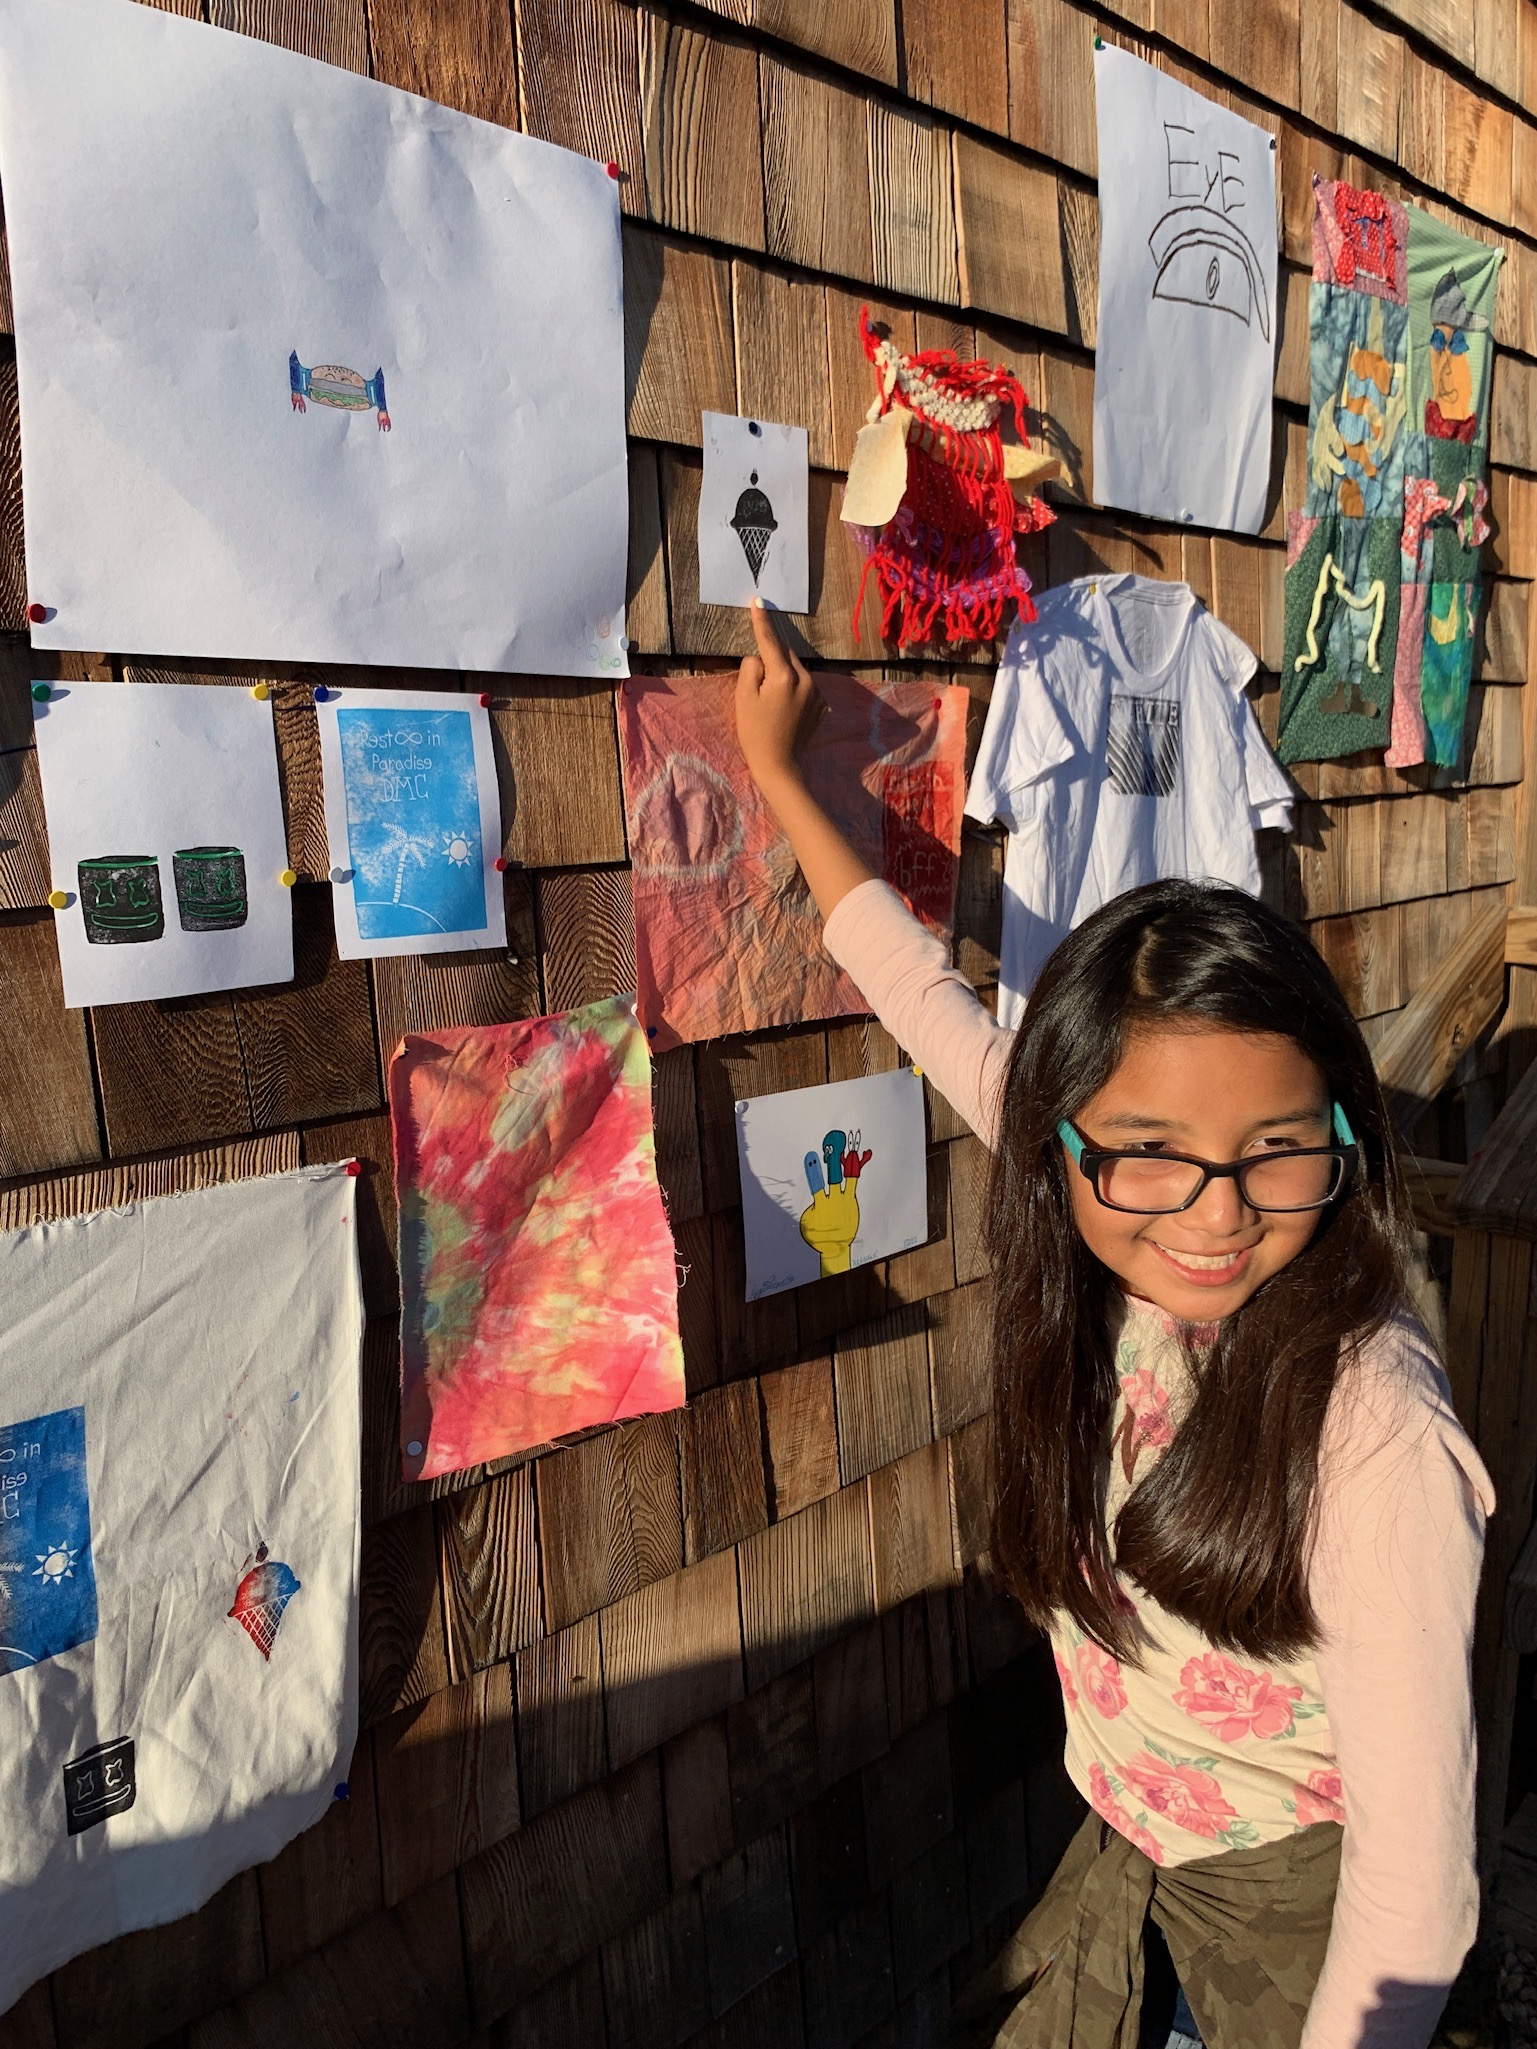 Intentioned  arts programming  allows the kids to express themselves creatively